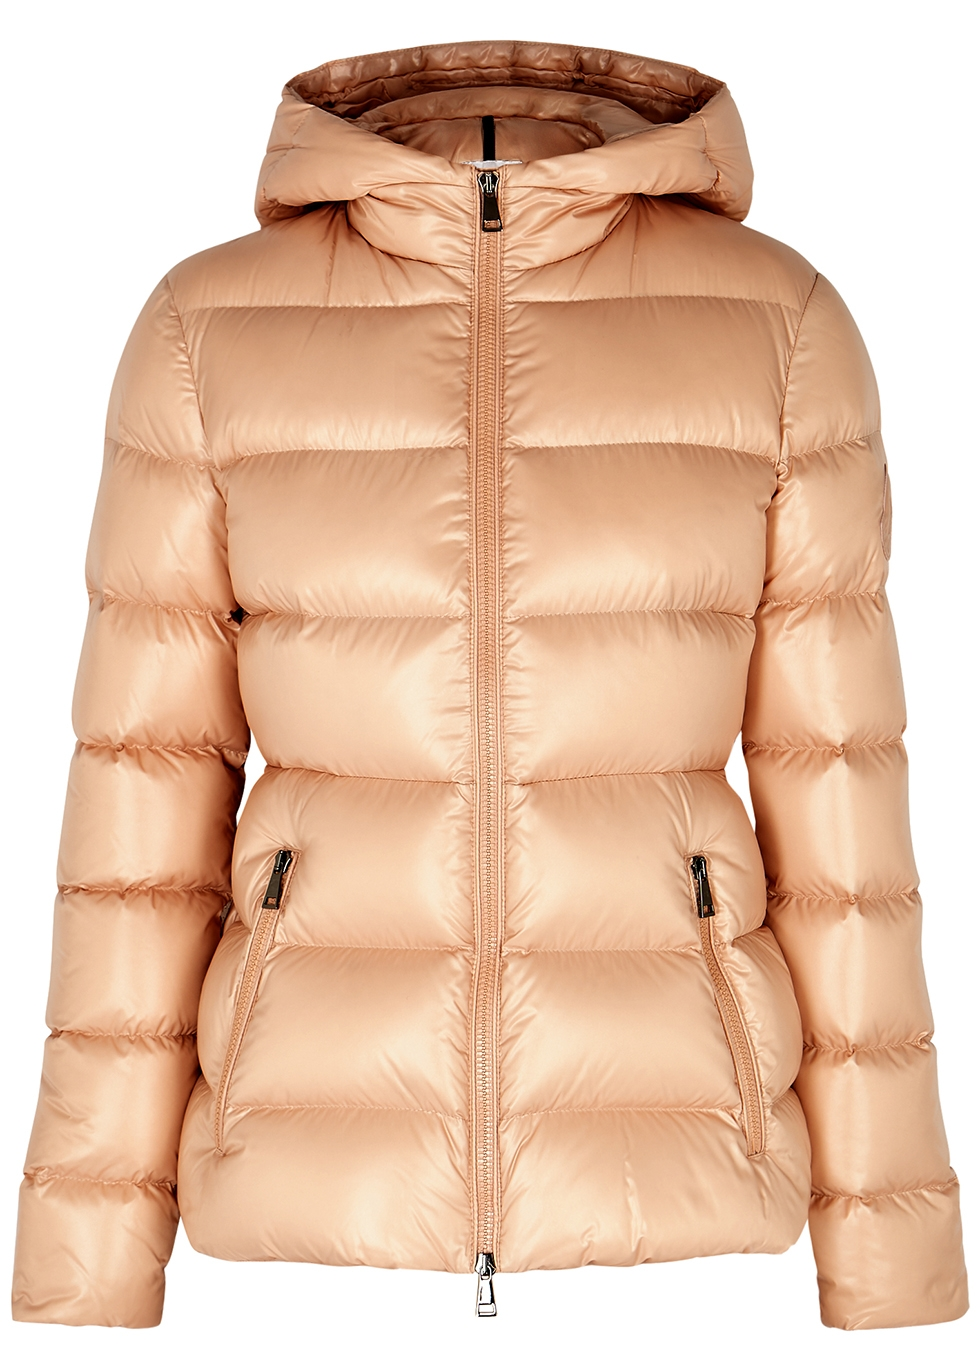 Rhin peach quilted shell jacket